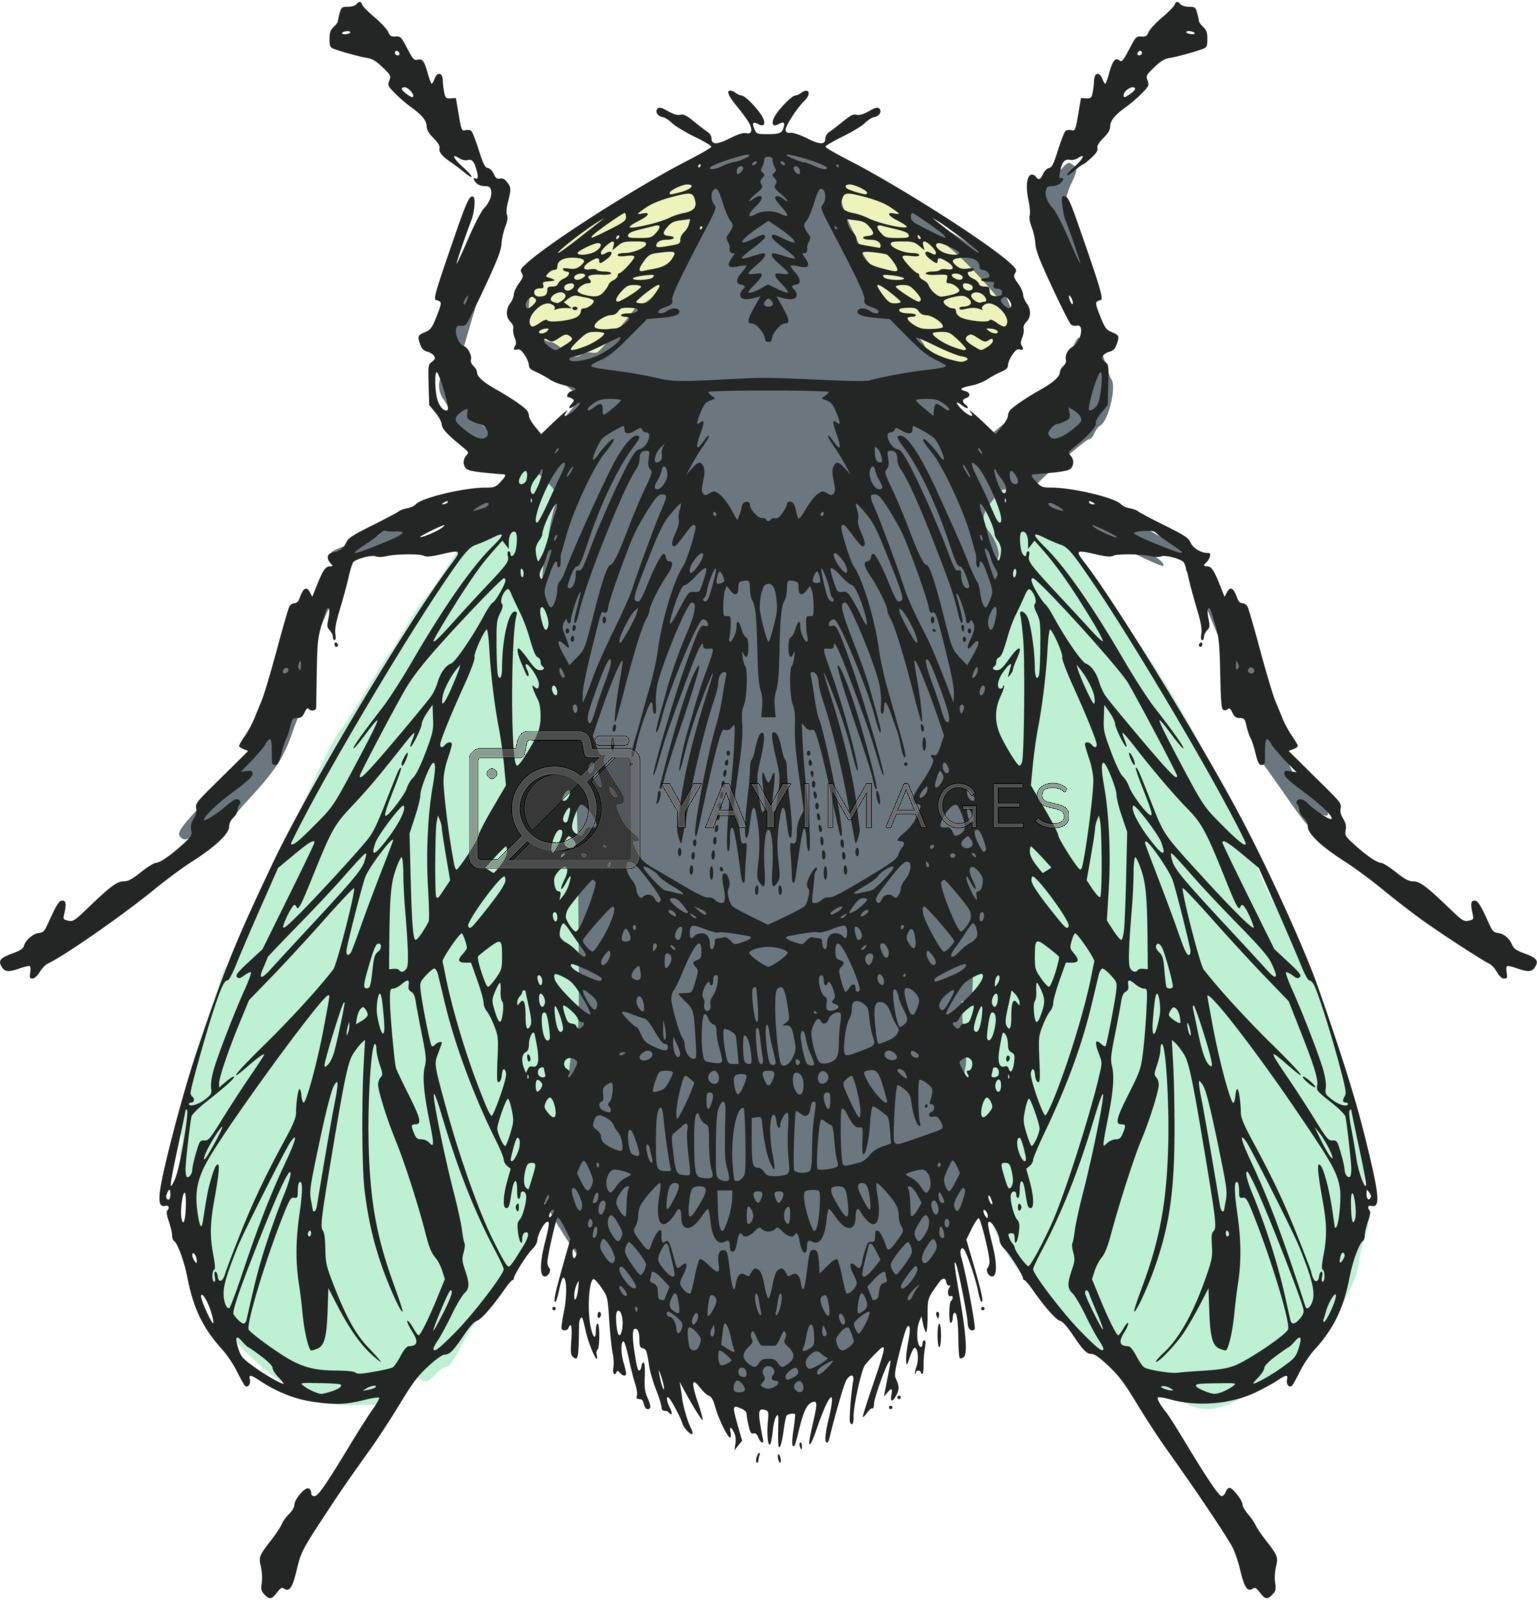 Royalty free image of ordinary fly by Perysty